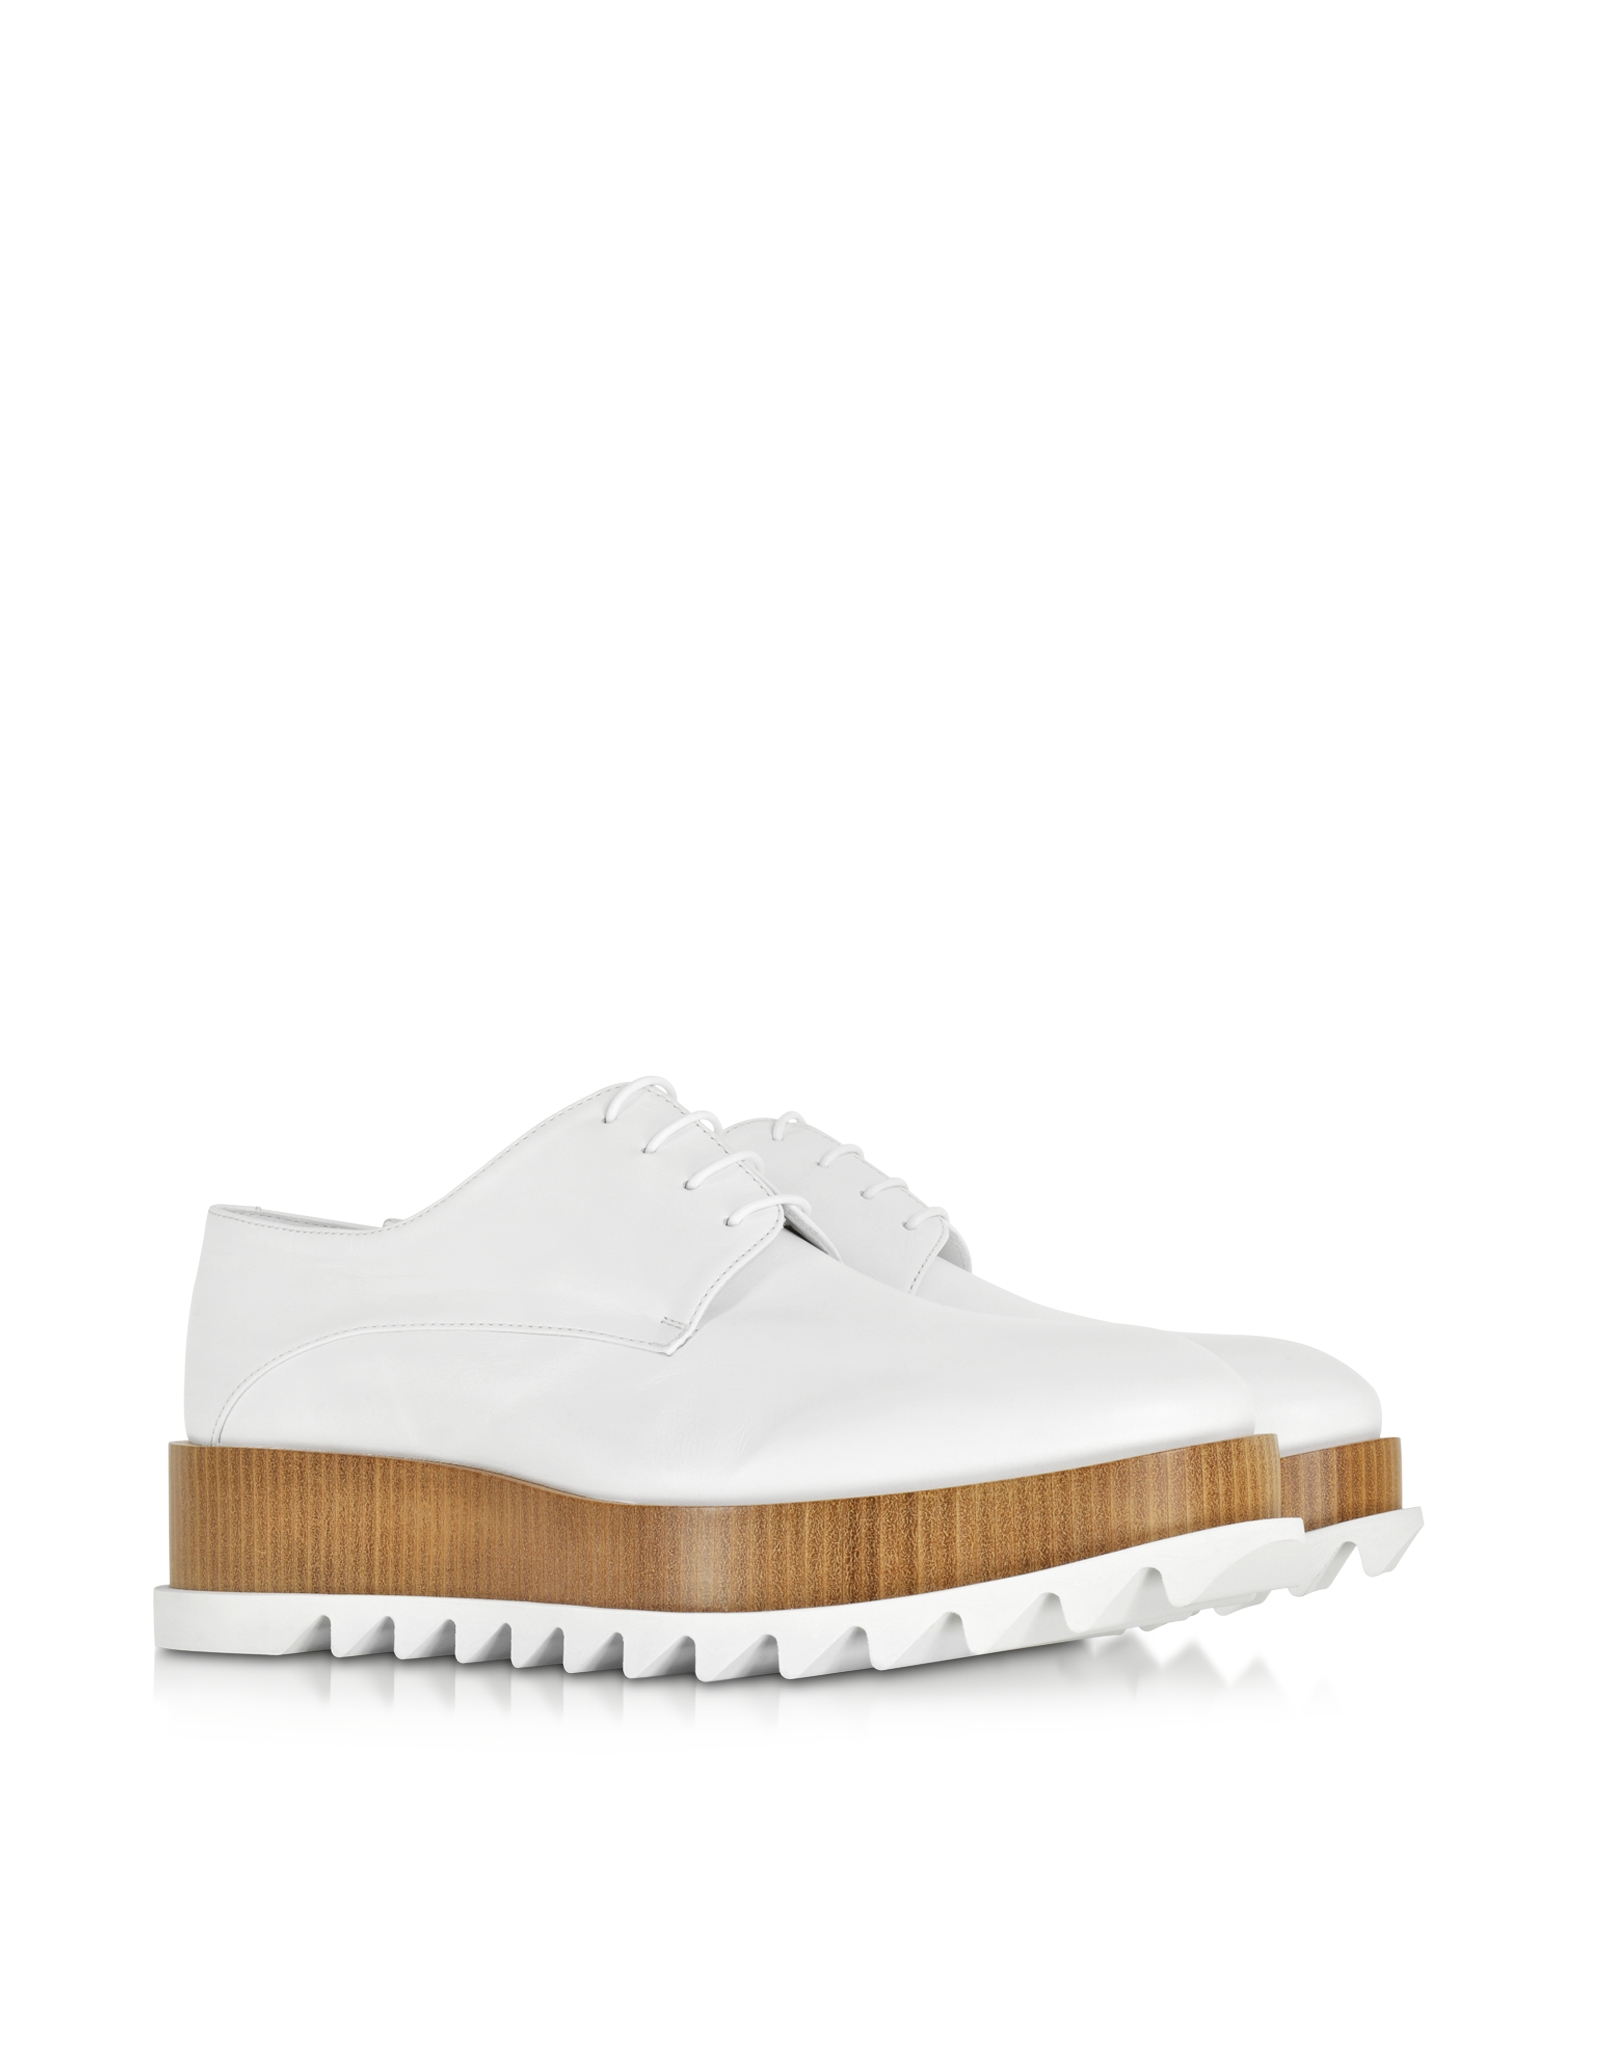 jil sander white leather platform lace up shoe in white lyst